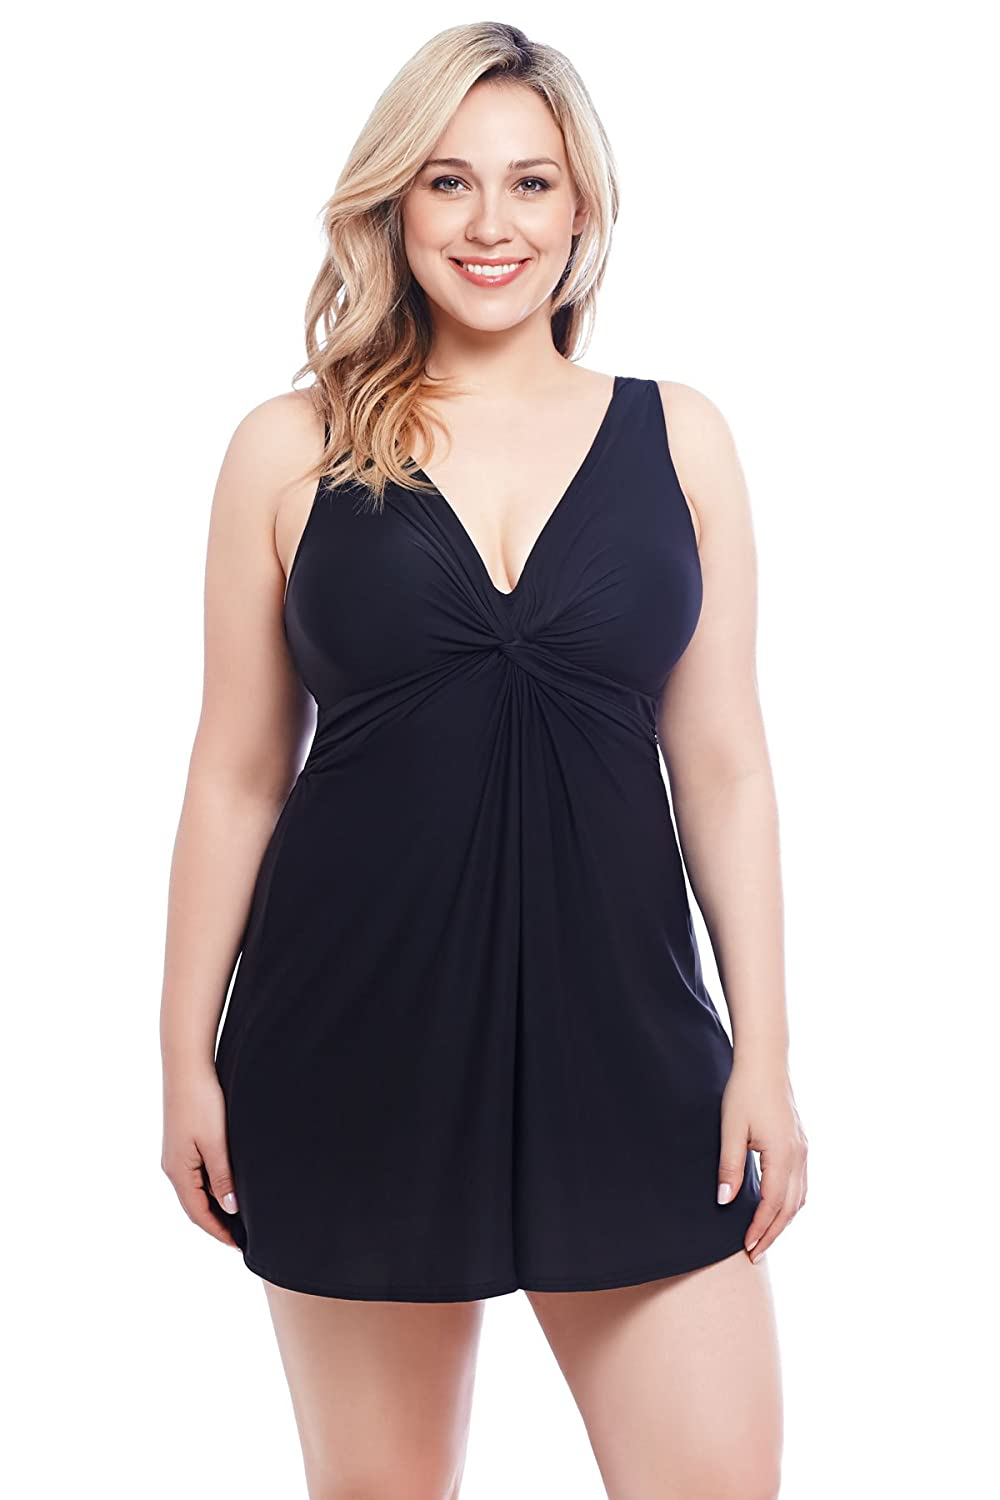 Miraclesuit Women's Plus Size Marais One Piece Swimdress Swimsuit